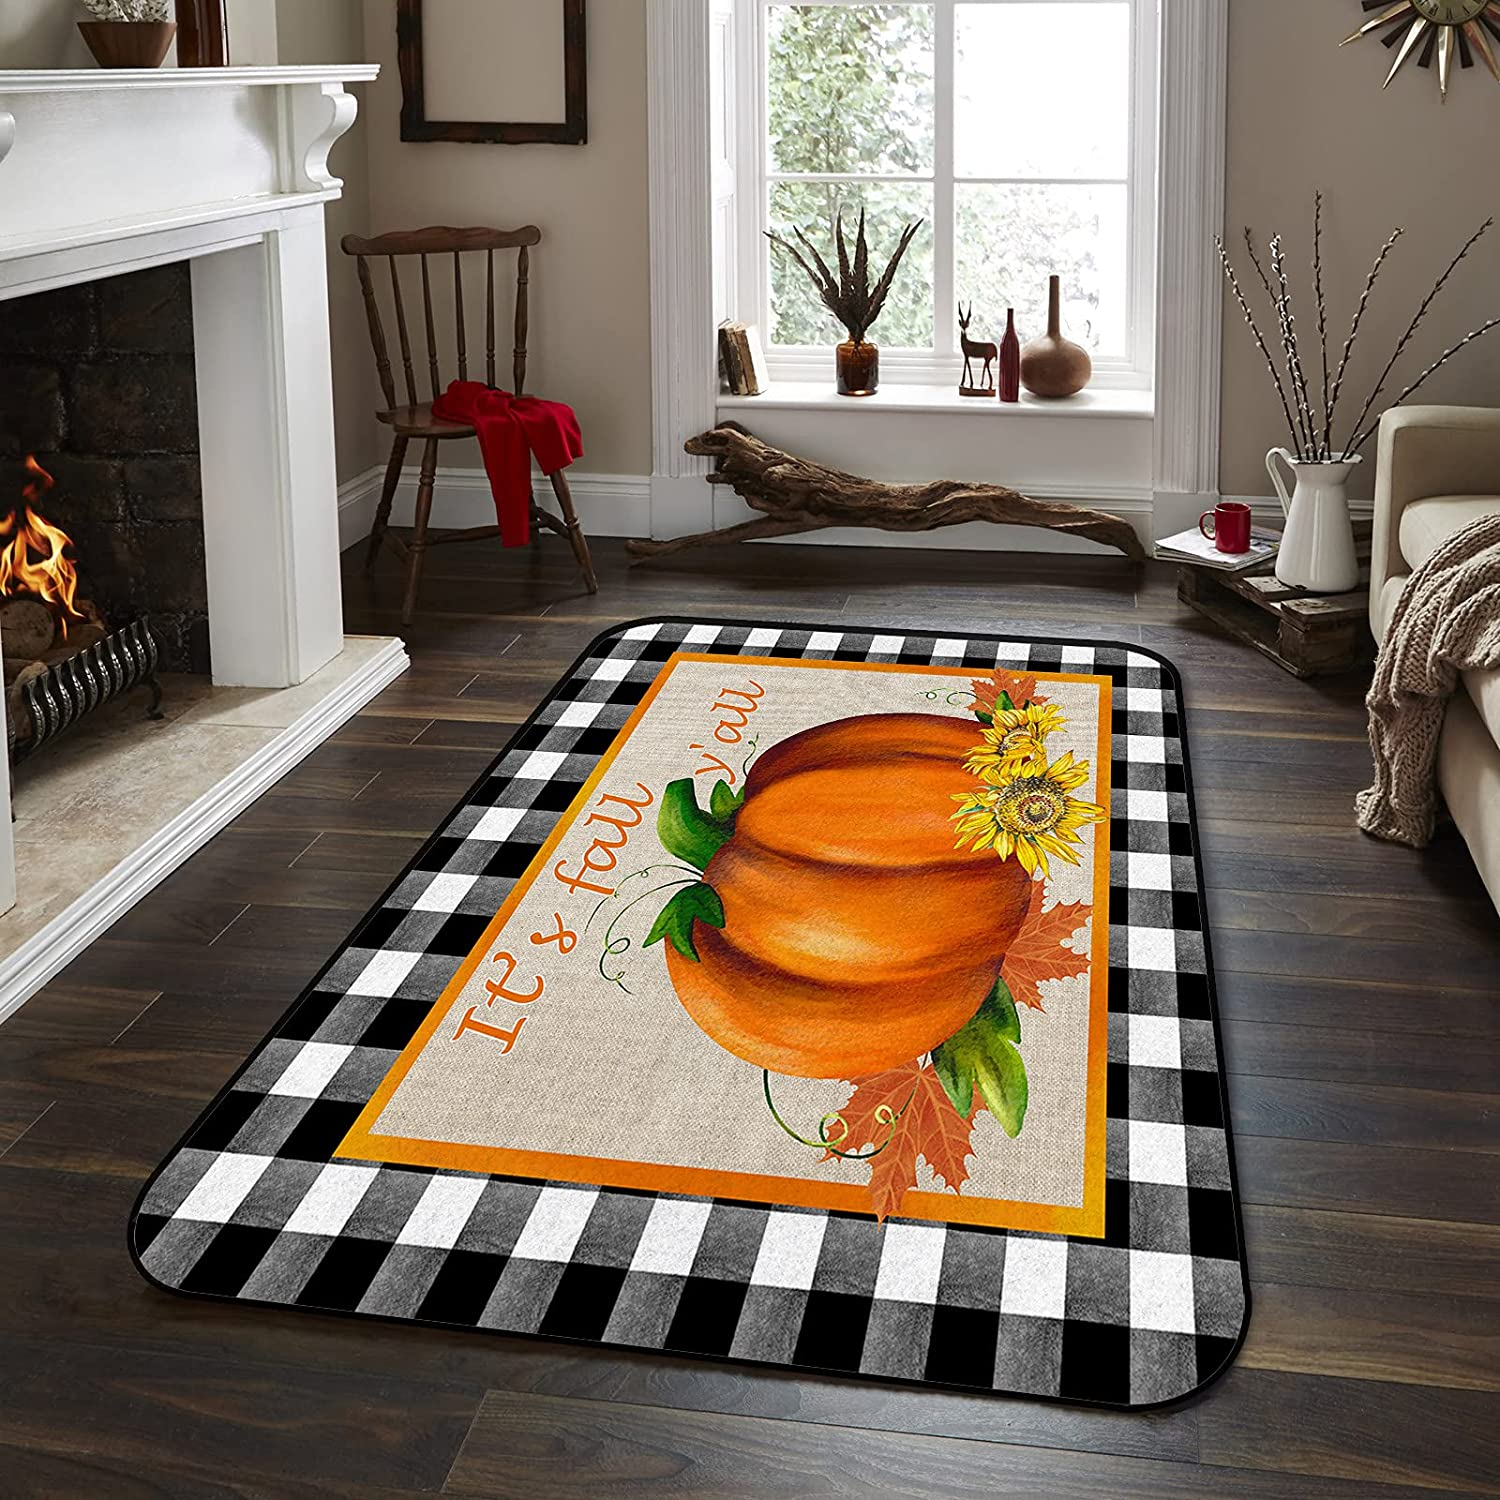 Large Area Rugs 3' x 5' Modern Cover All items in the store Carpet Floor Gorgeous Throw Nursery